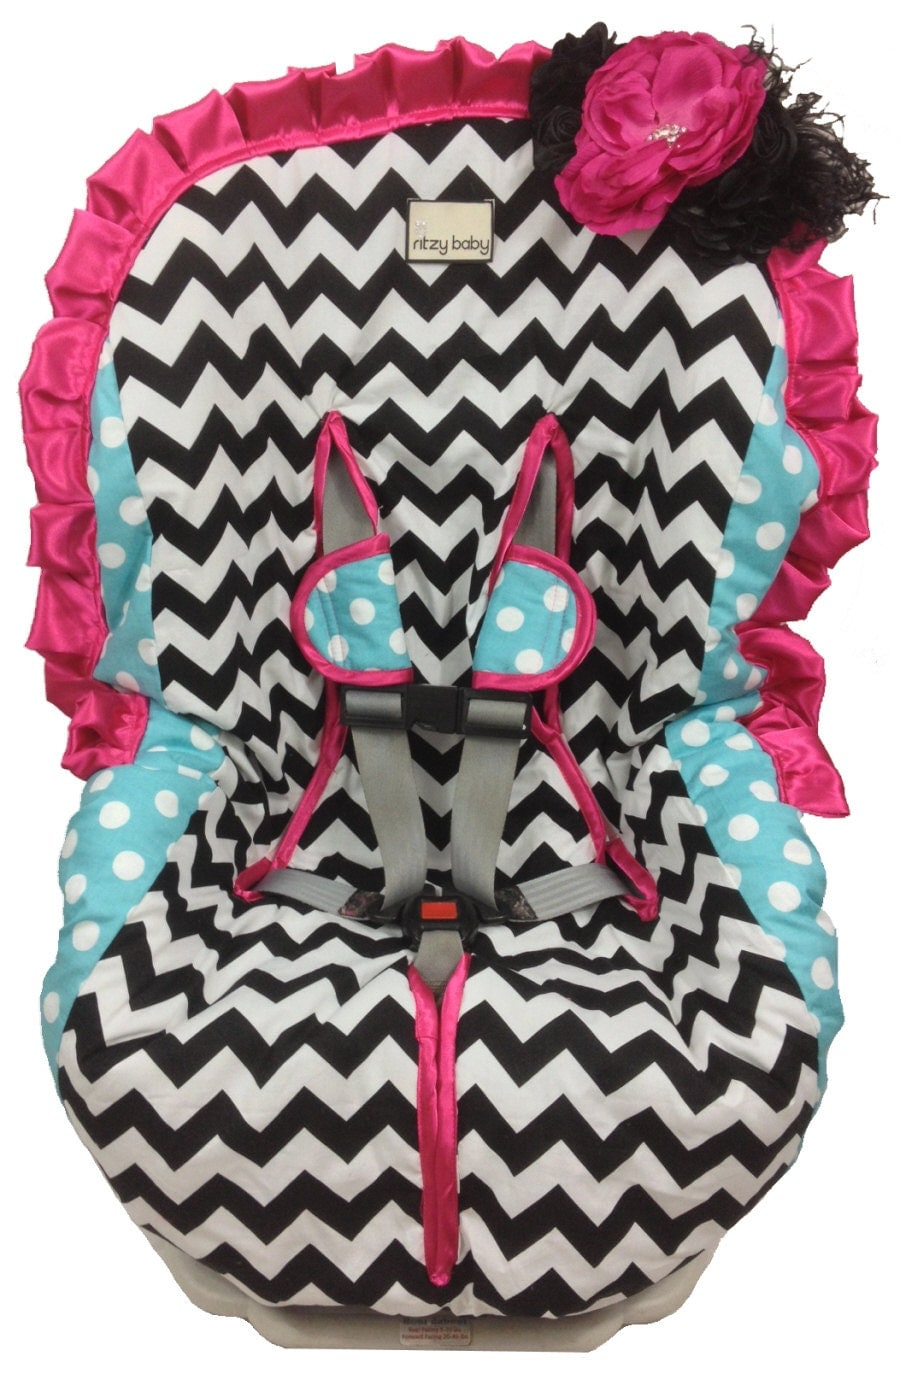 toddler car seat cover girly girl padded easy on easy off. Black Bedroom Furniture Sets. Home Design Ideas